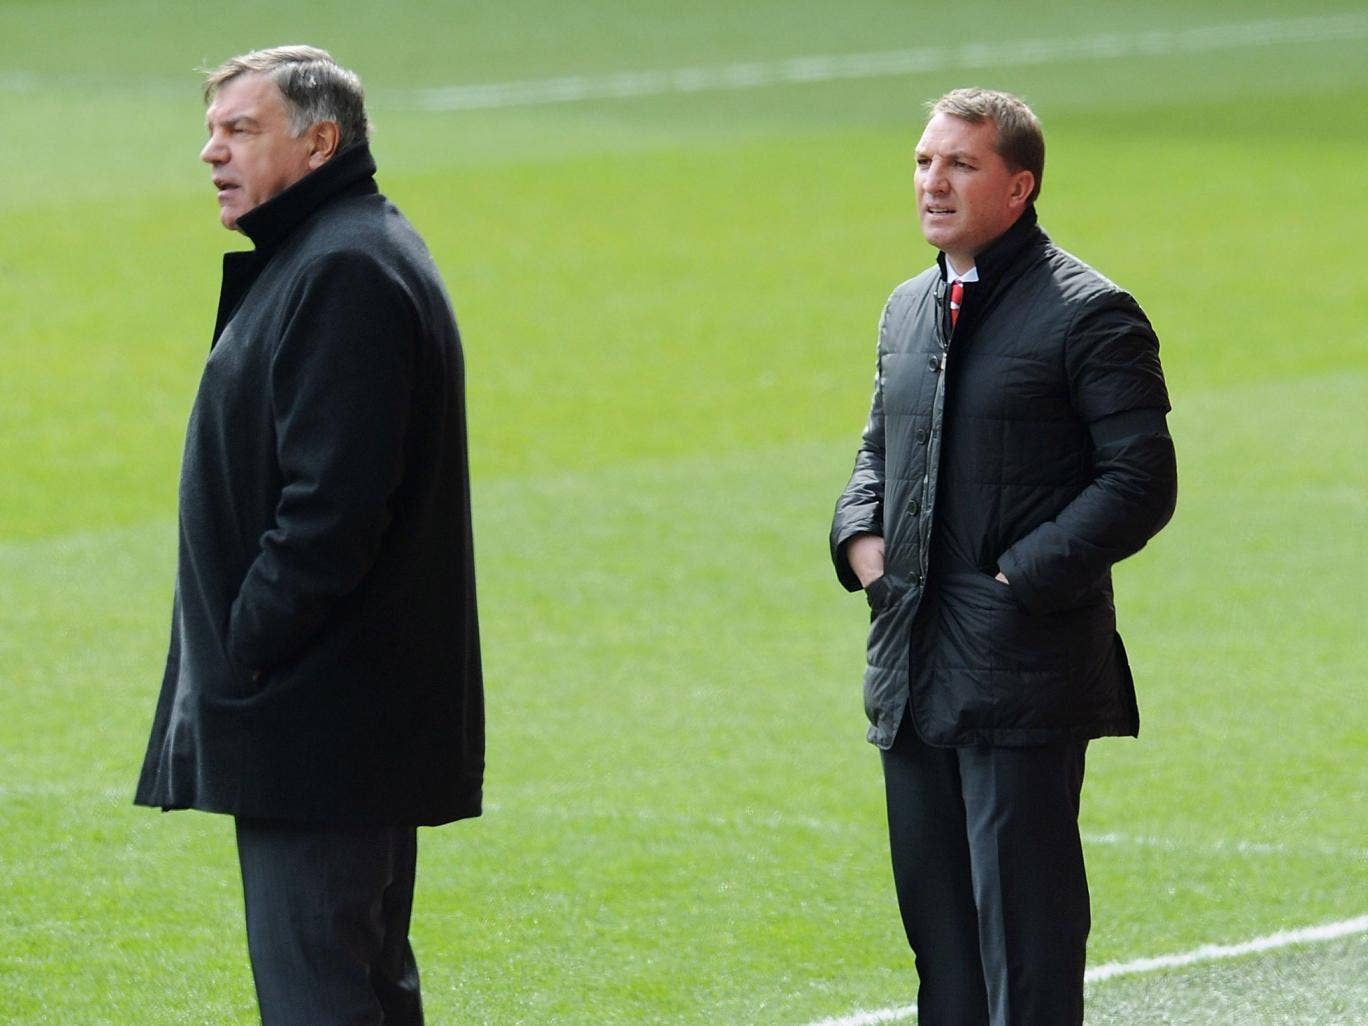 West Ham manager Sam Allardyce has been backed by Liverpool boss Brendan Rodgers for doing an 'excellent job' given the number of injuries his squad have